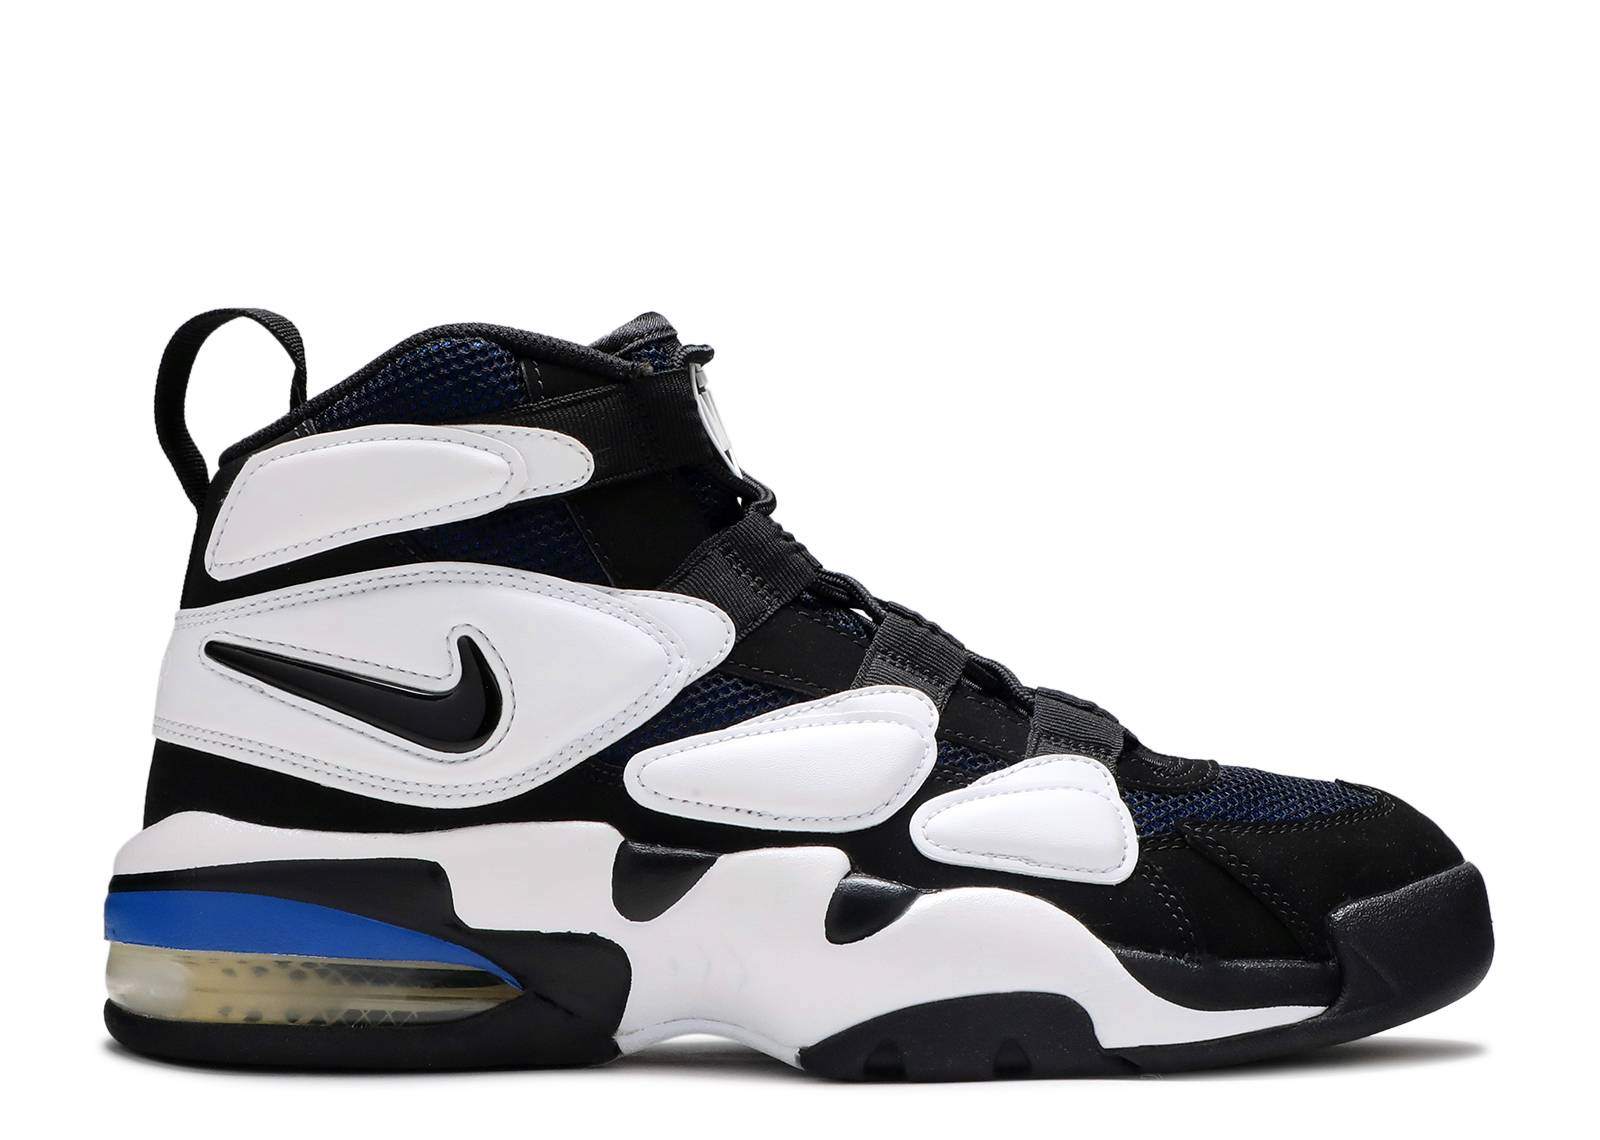 d0861a2c4607 Nike Air Max2 Uptempo  94 - Nike - 922934 101 - white black-royal ...